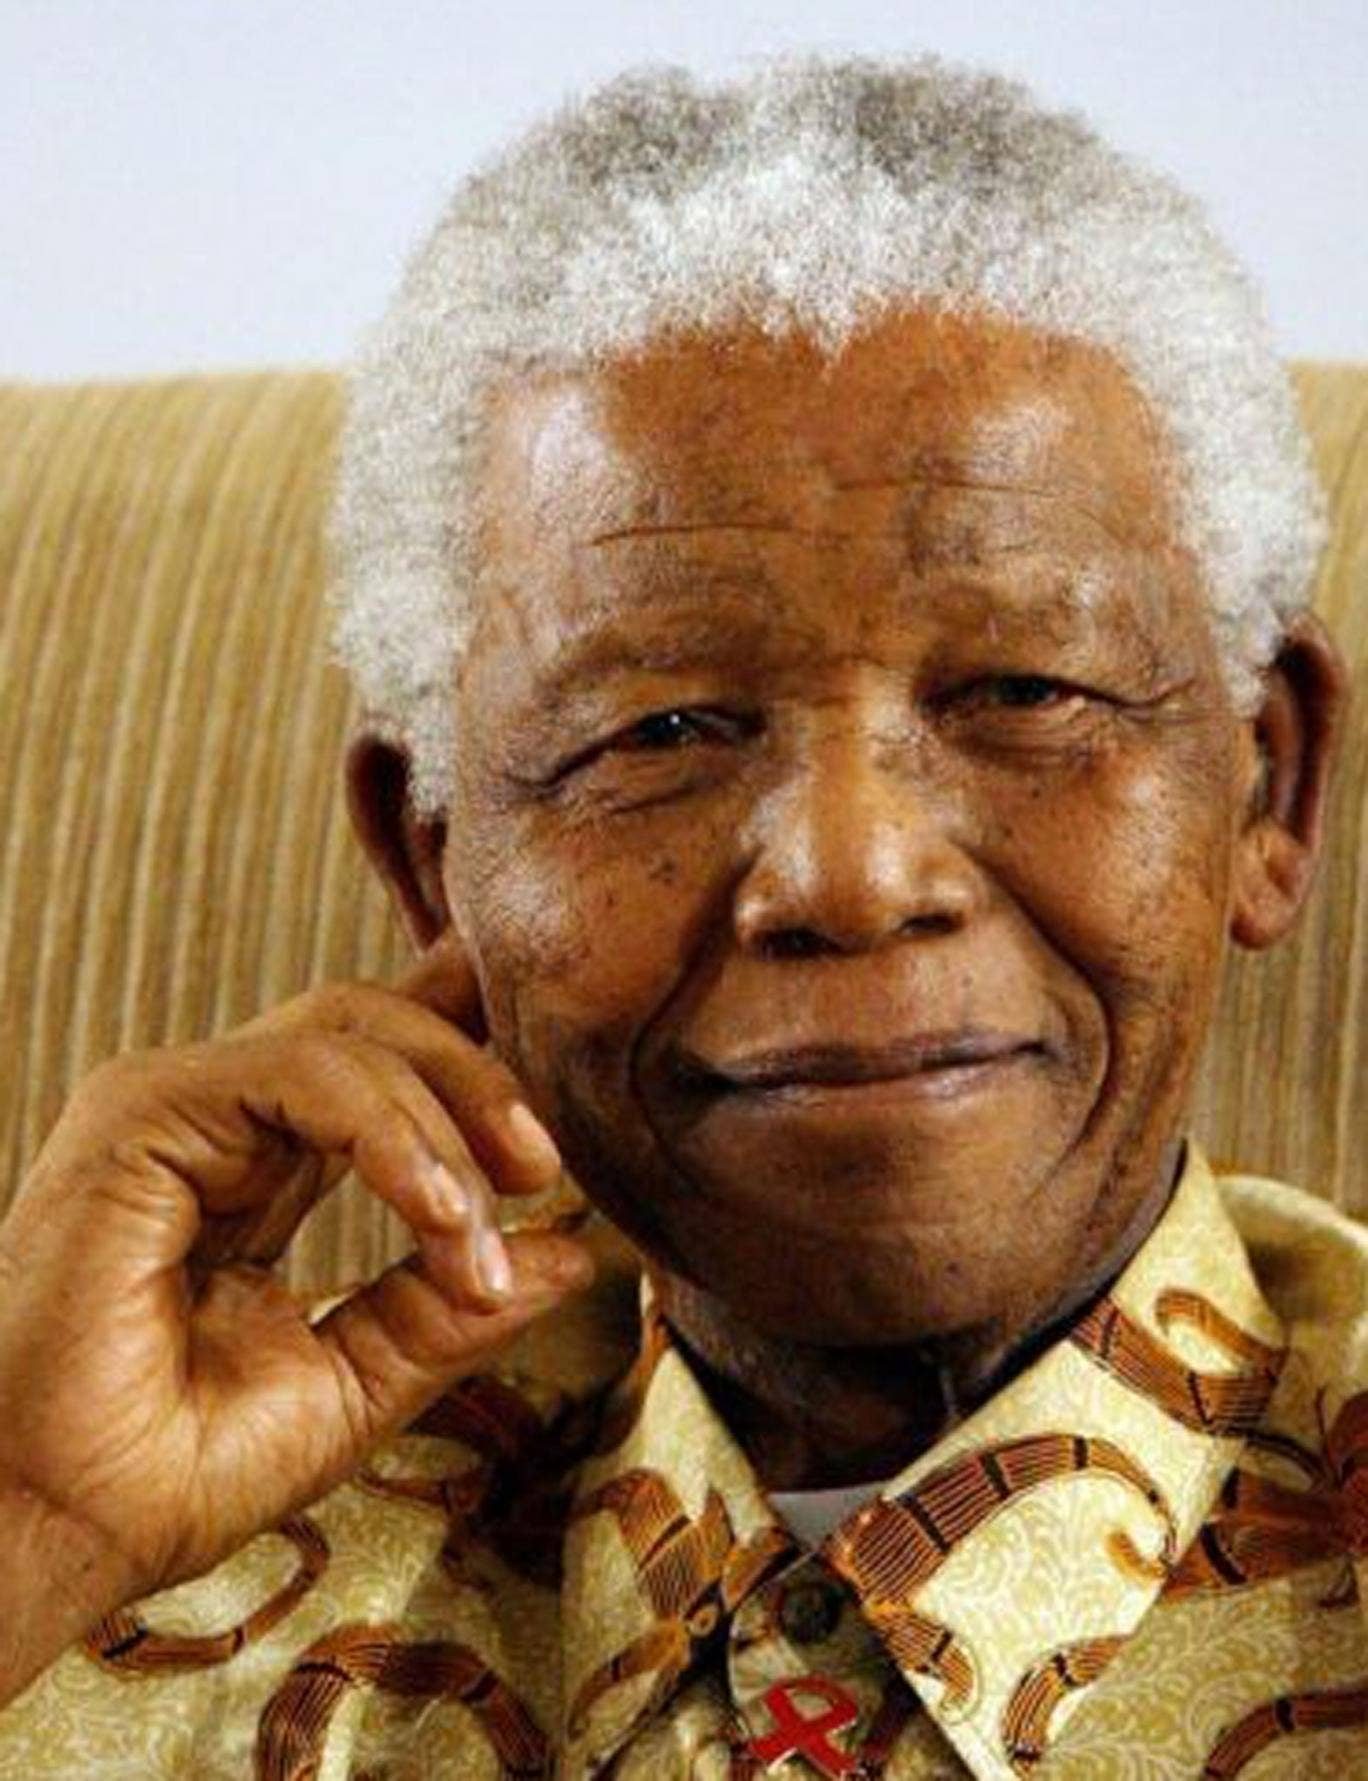 Mandela, 95, has spent two months in a Pretoria hospital battling a lung infection